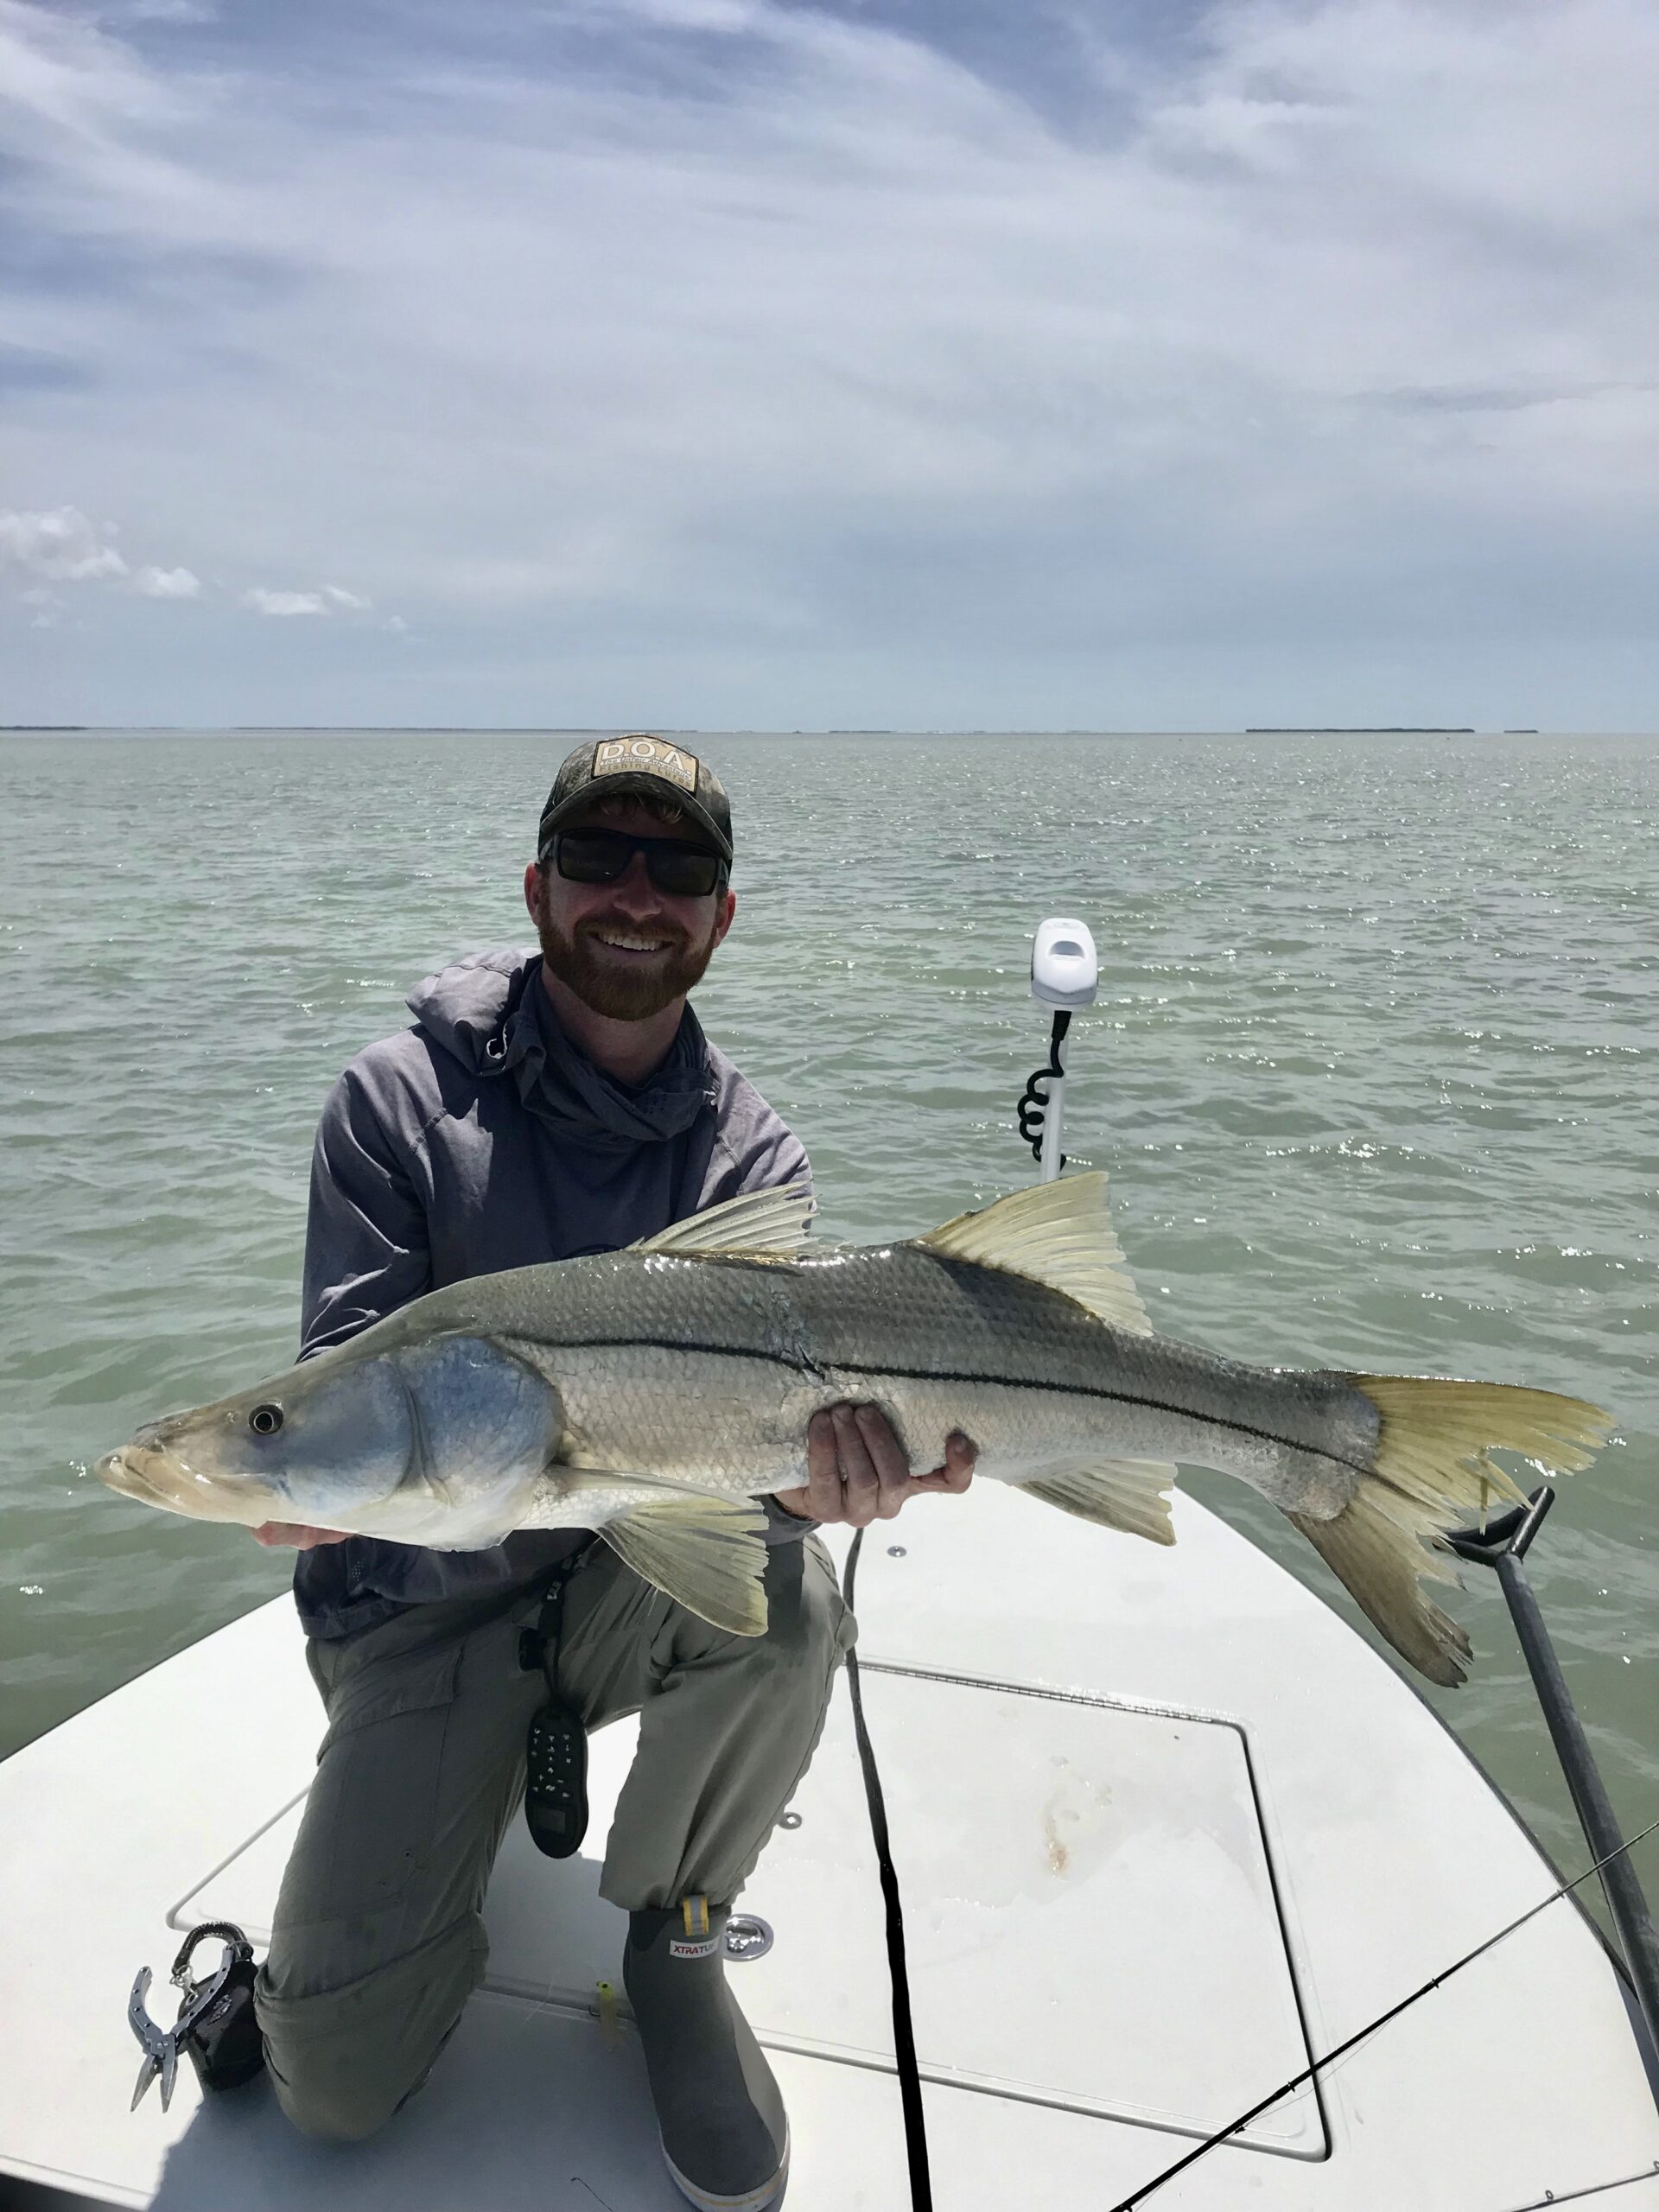 Smiling man holding a big snook. Opens a photo gallery.